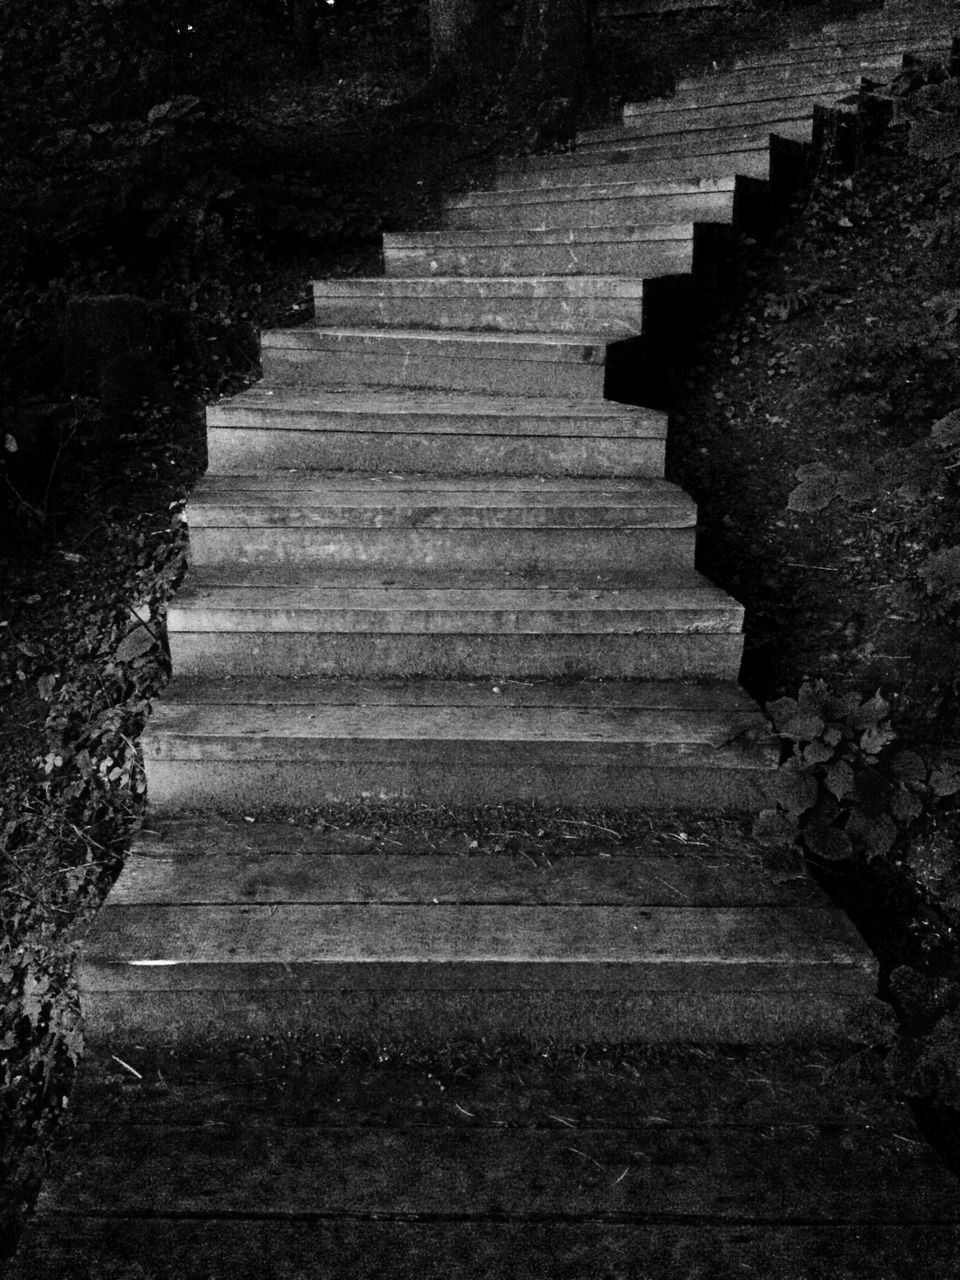 steps, steps and staircases, staircase, in a row, stairs, low angle view, no people, outdoors, day, nature